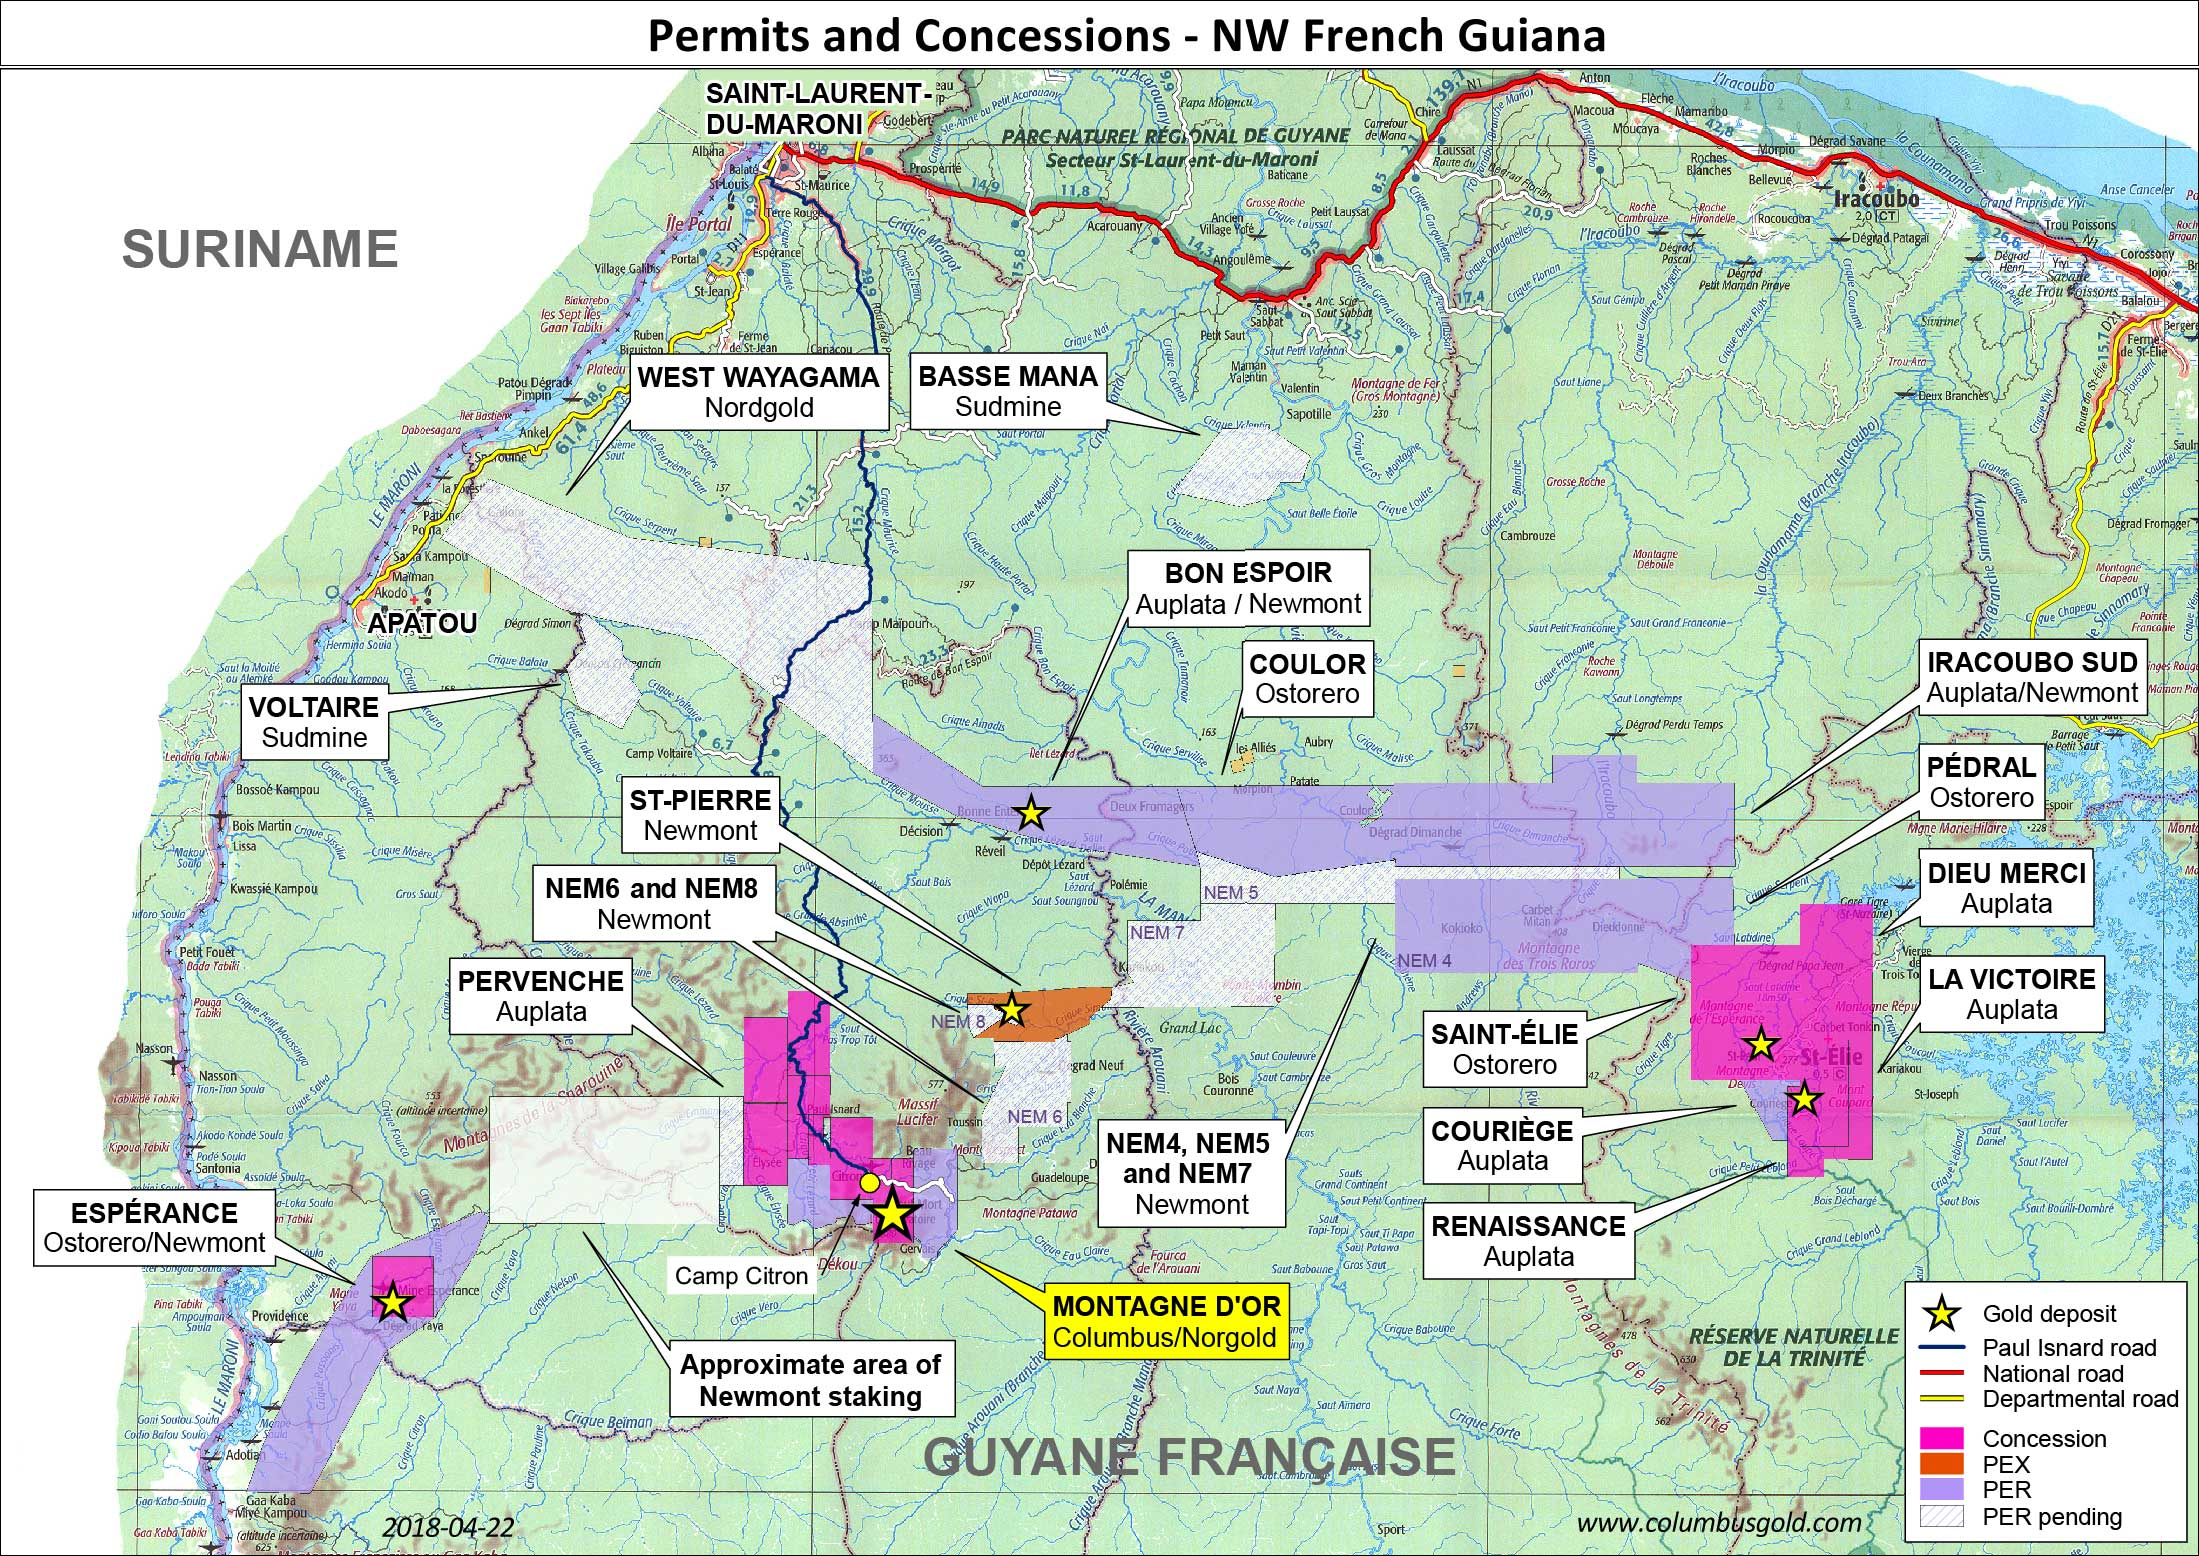 Permits and Concessions NW French Guiana